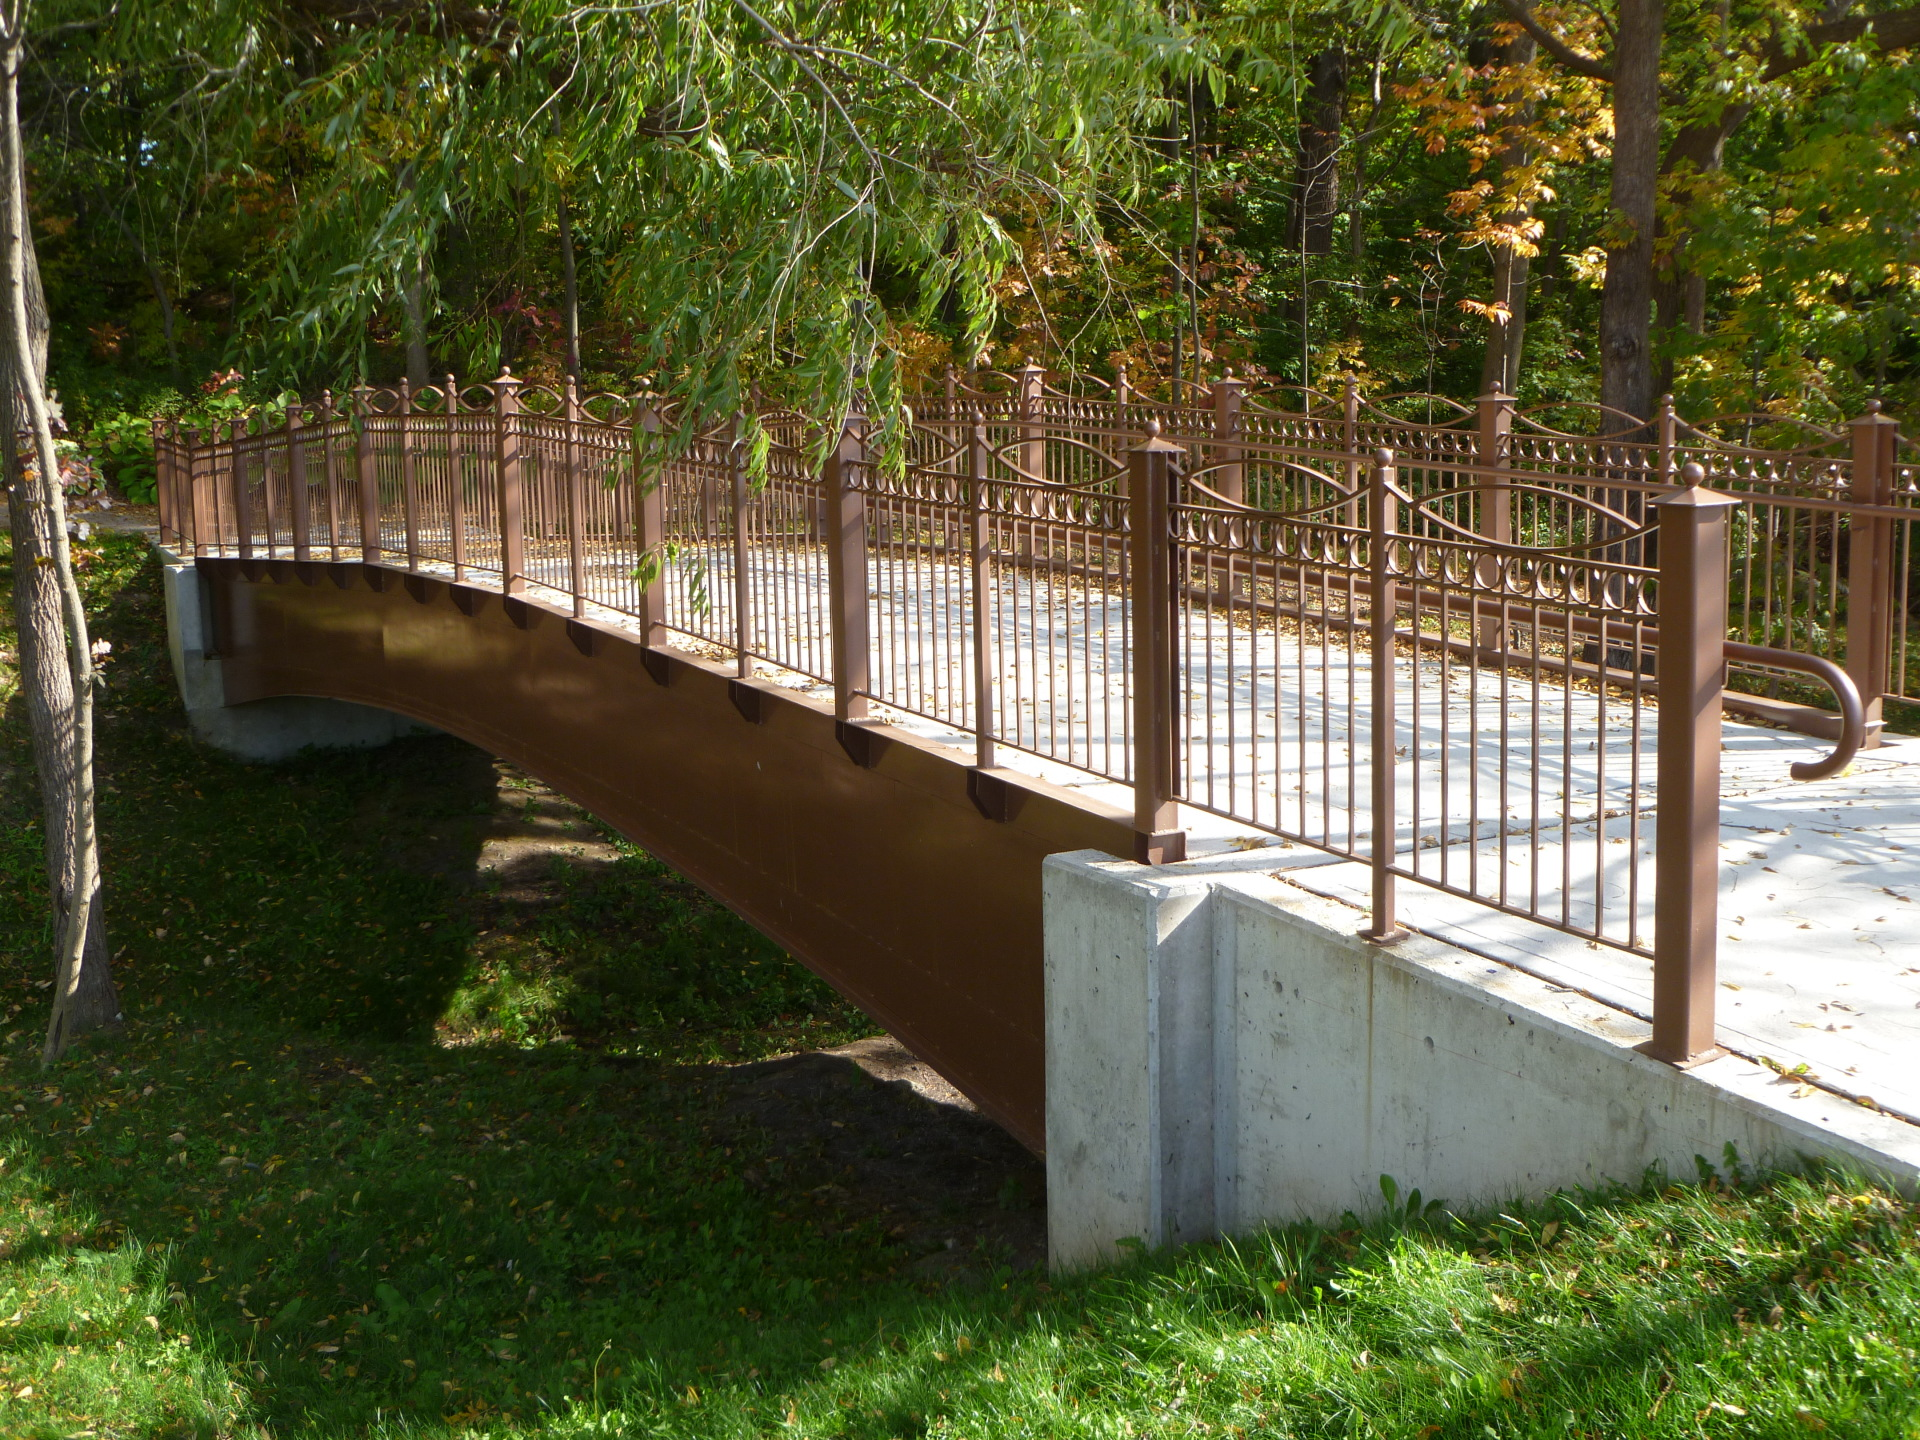 bridge, monument, precast concrete, concrete, materials, steel, cover plates, arch, reinforced concrete deck slab, abutments